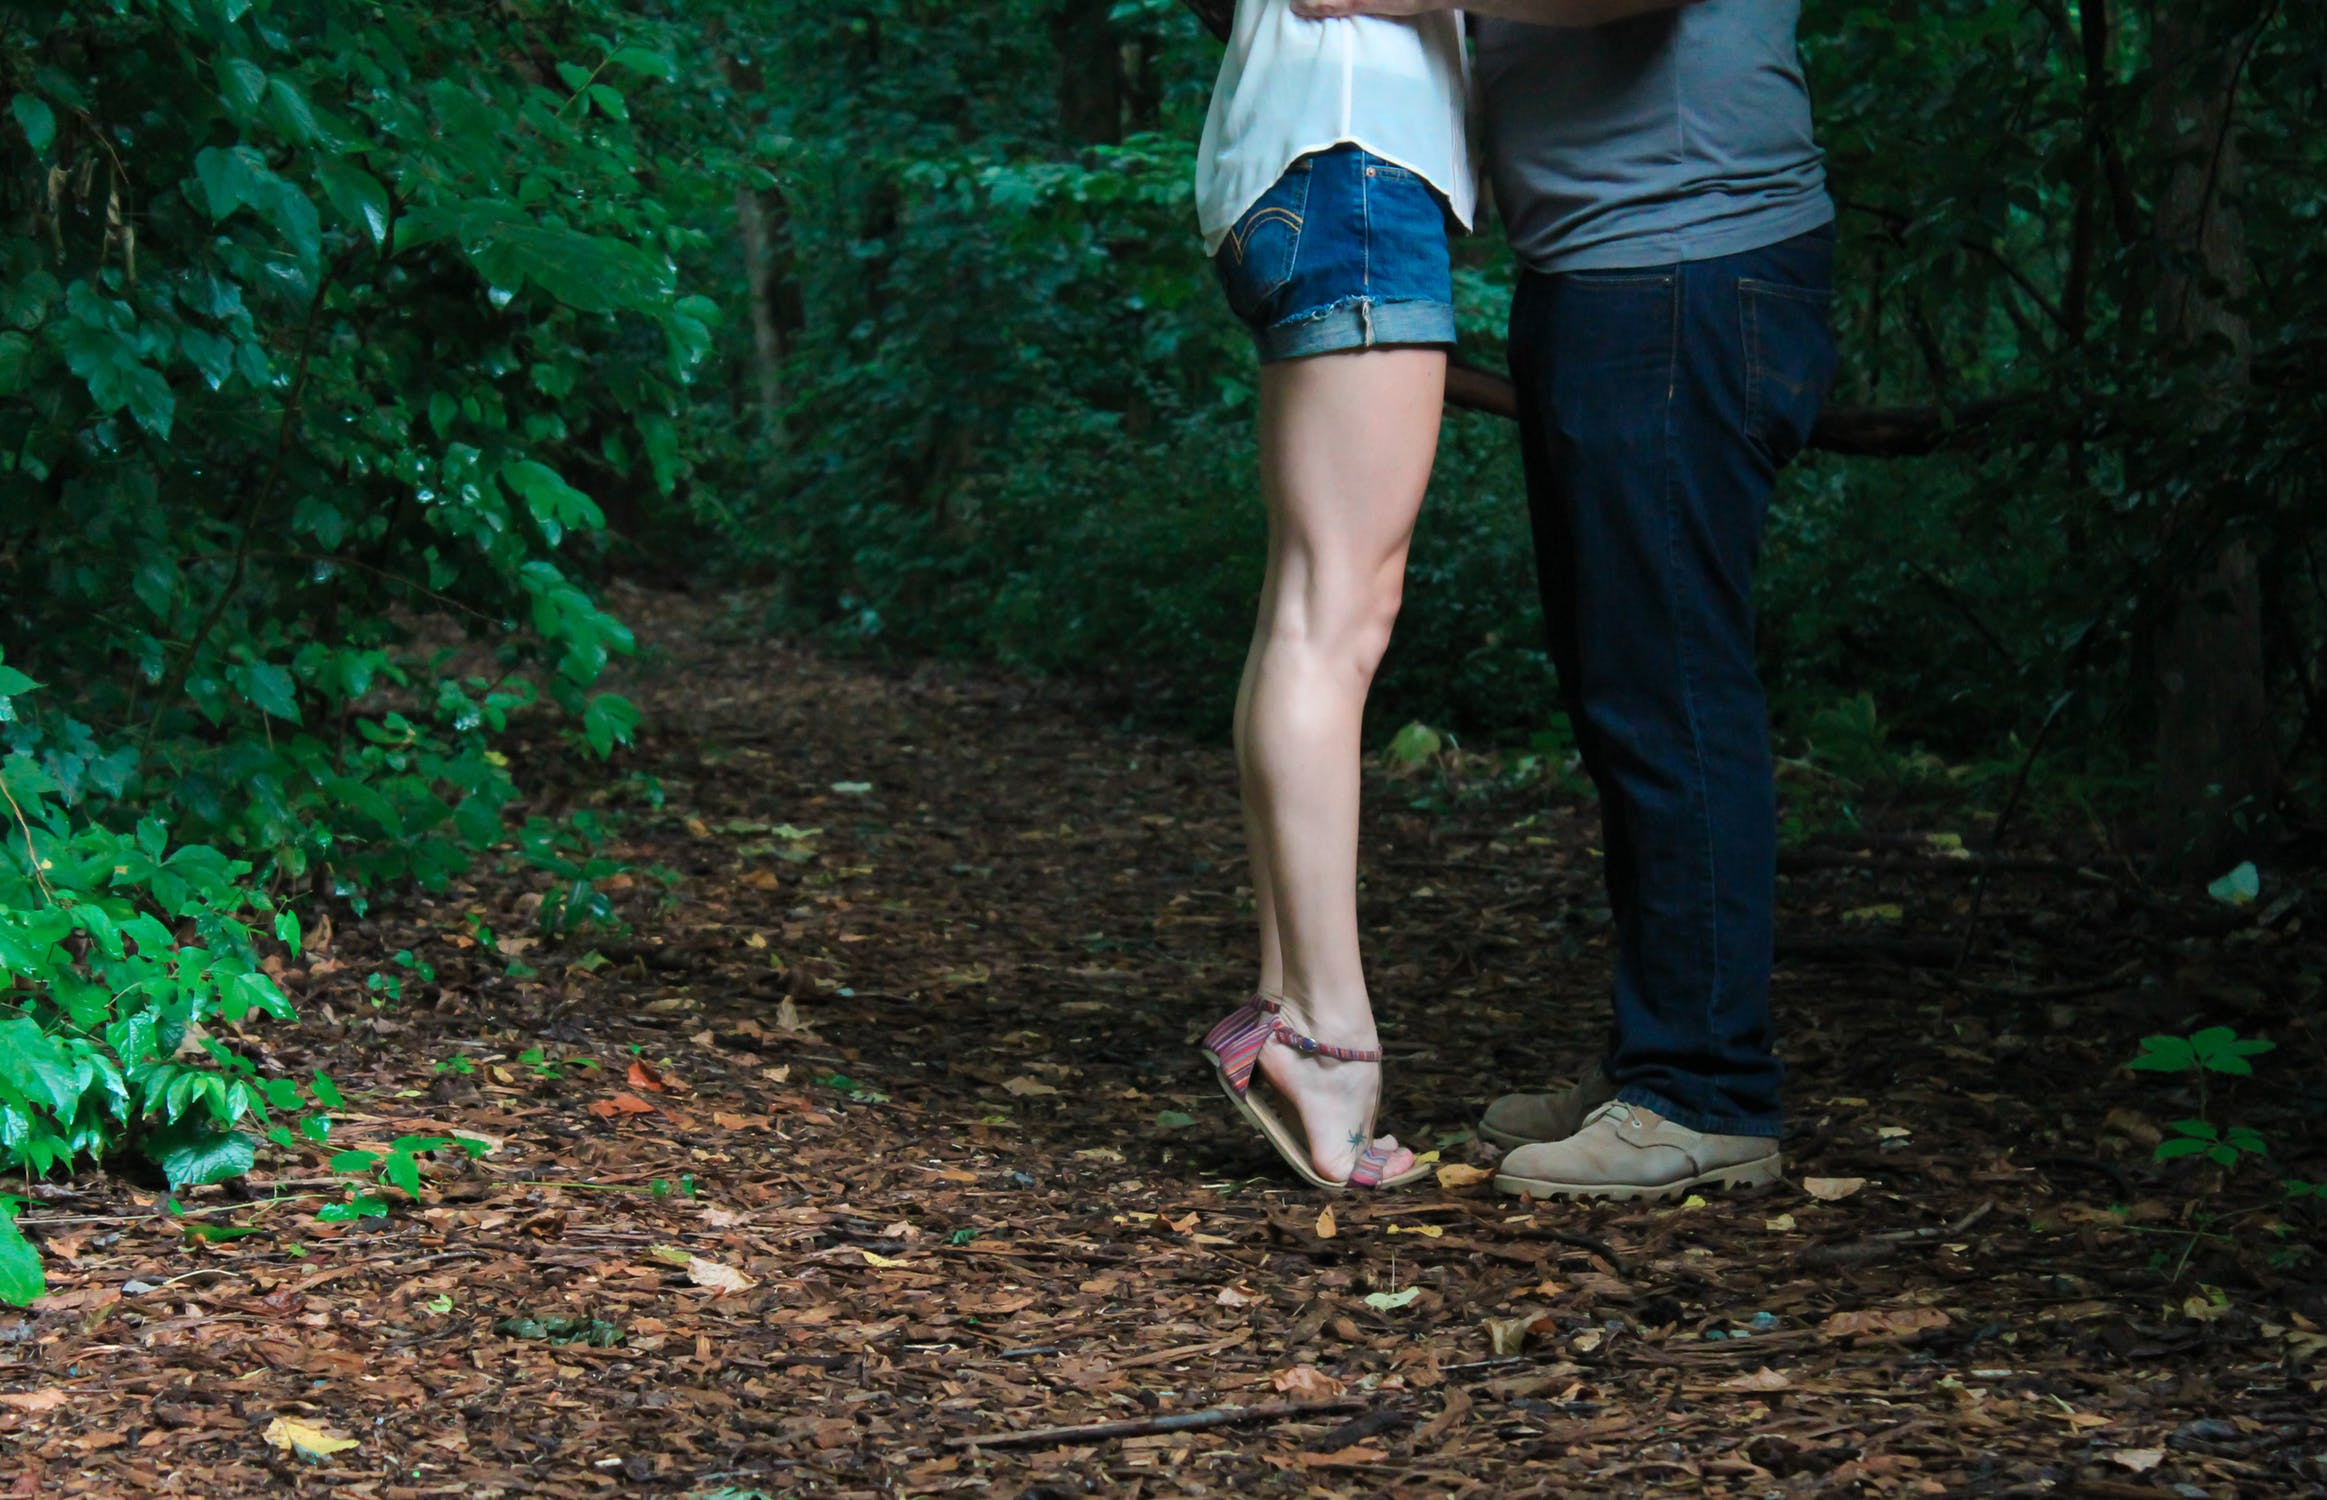 America's sexually transmitted disease rates are out of control